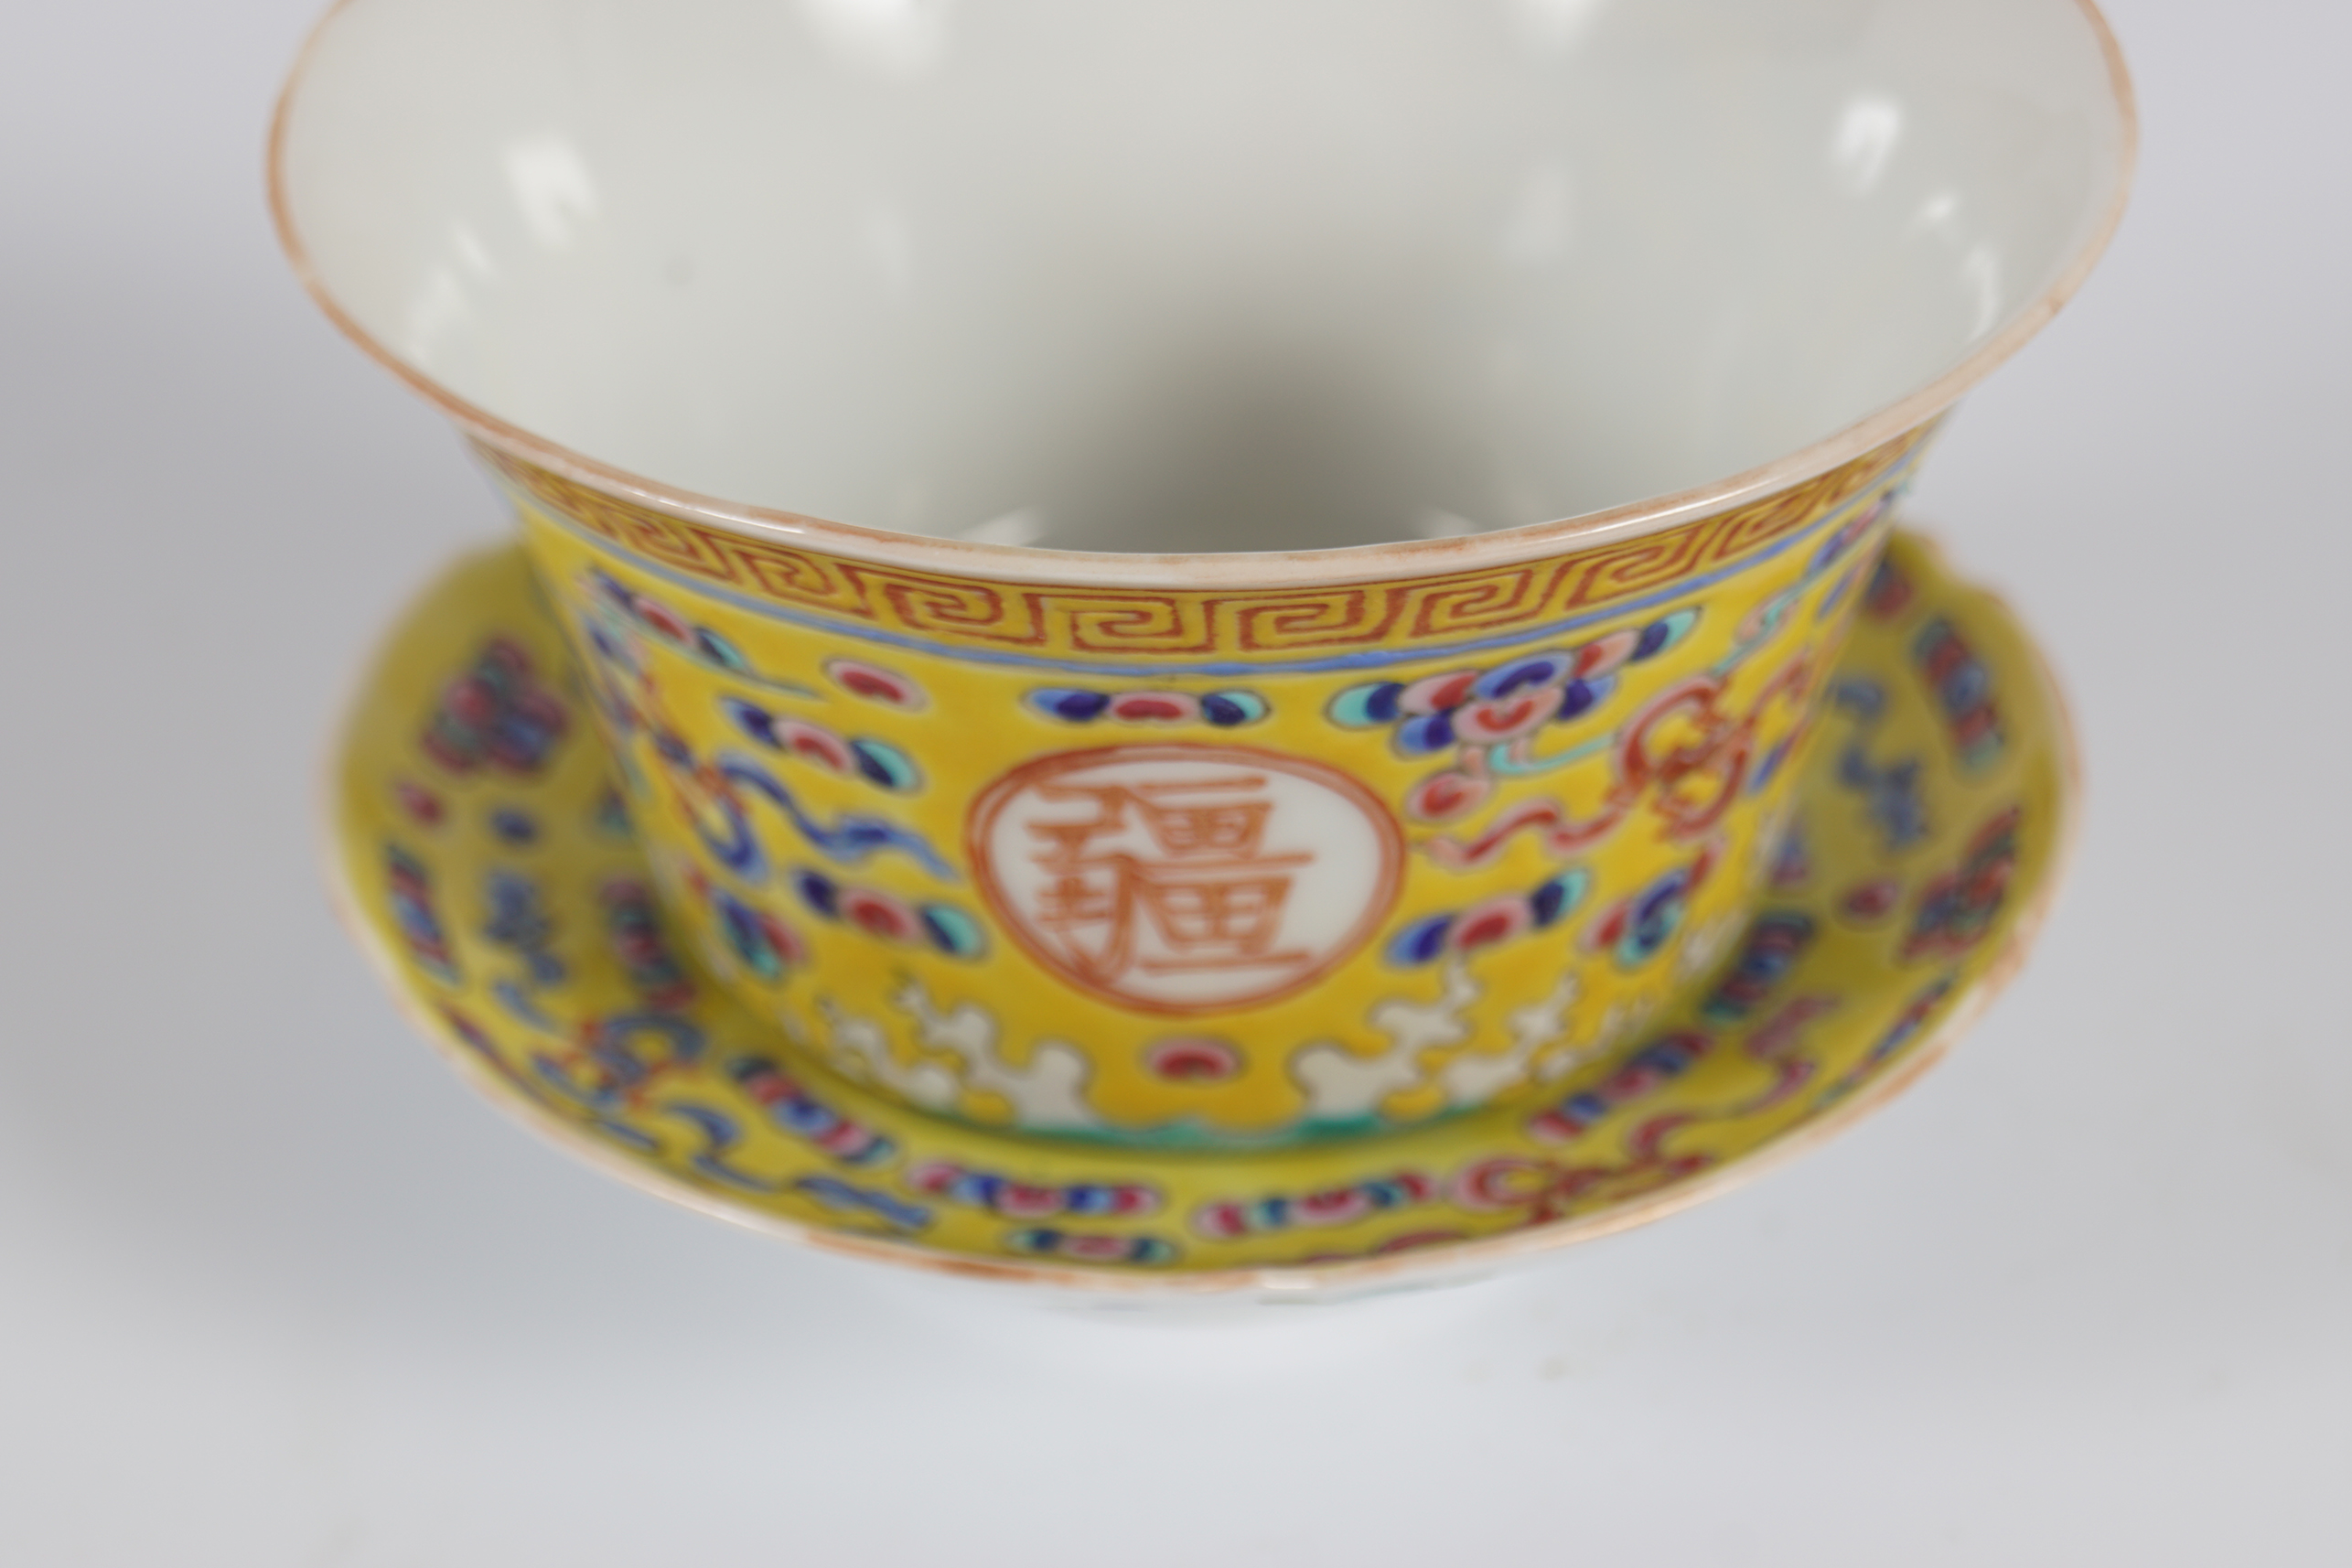 19TH-CENTURY CHINESE FAMILLE ROSE CUP AND SAUCER - Image 2 of 5